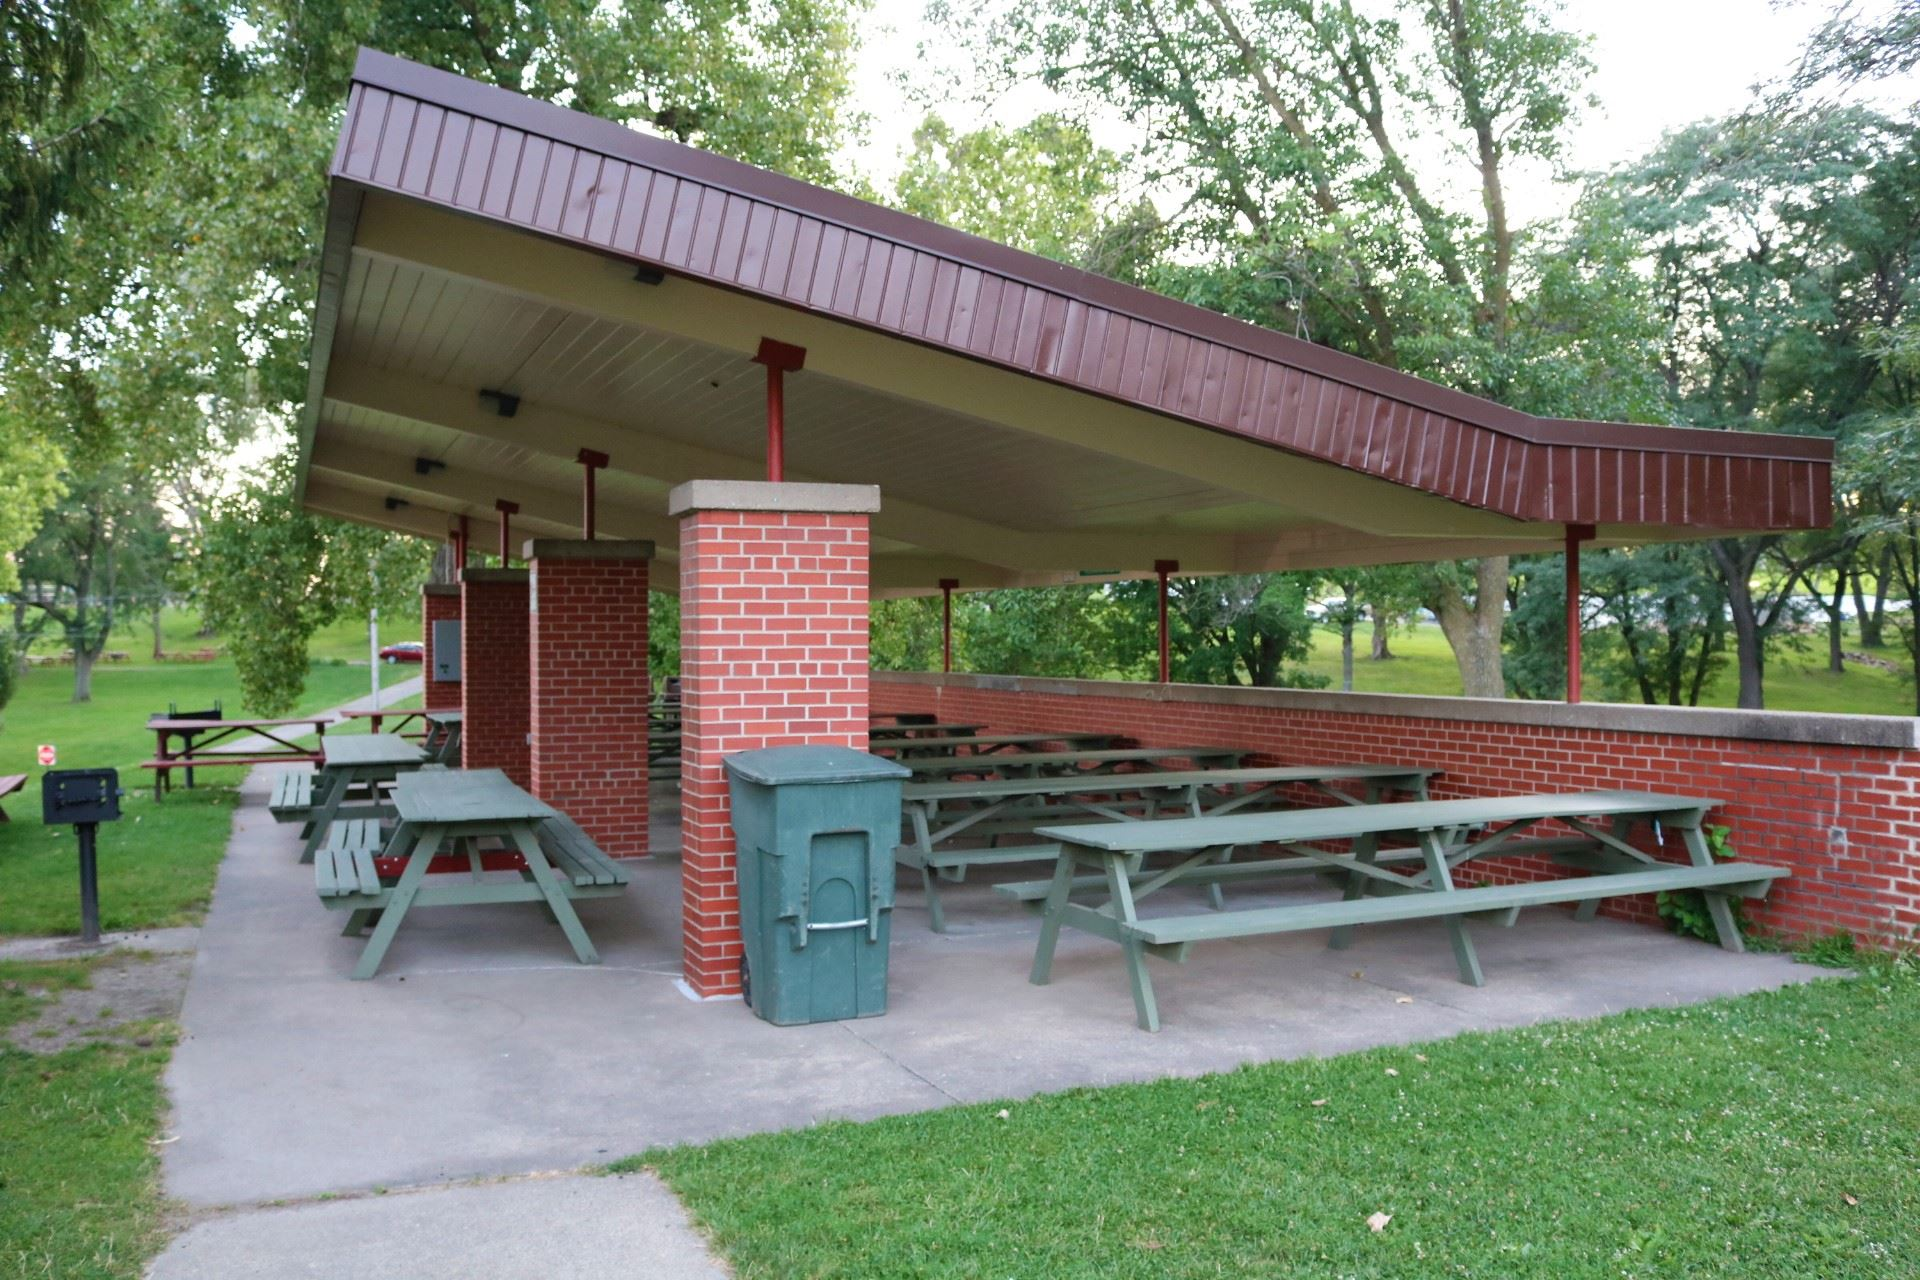 Brick Open Air seating: 126 people; price: $115.00. Handicapped accessible, 15 amp electricity. Seco